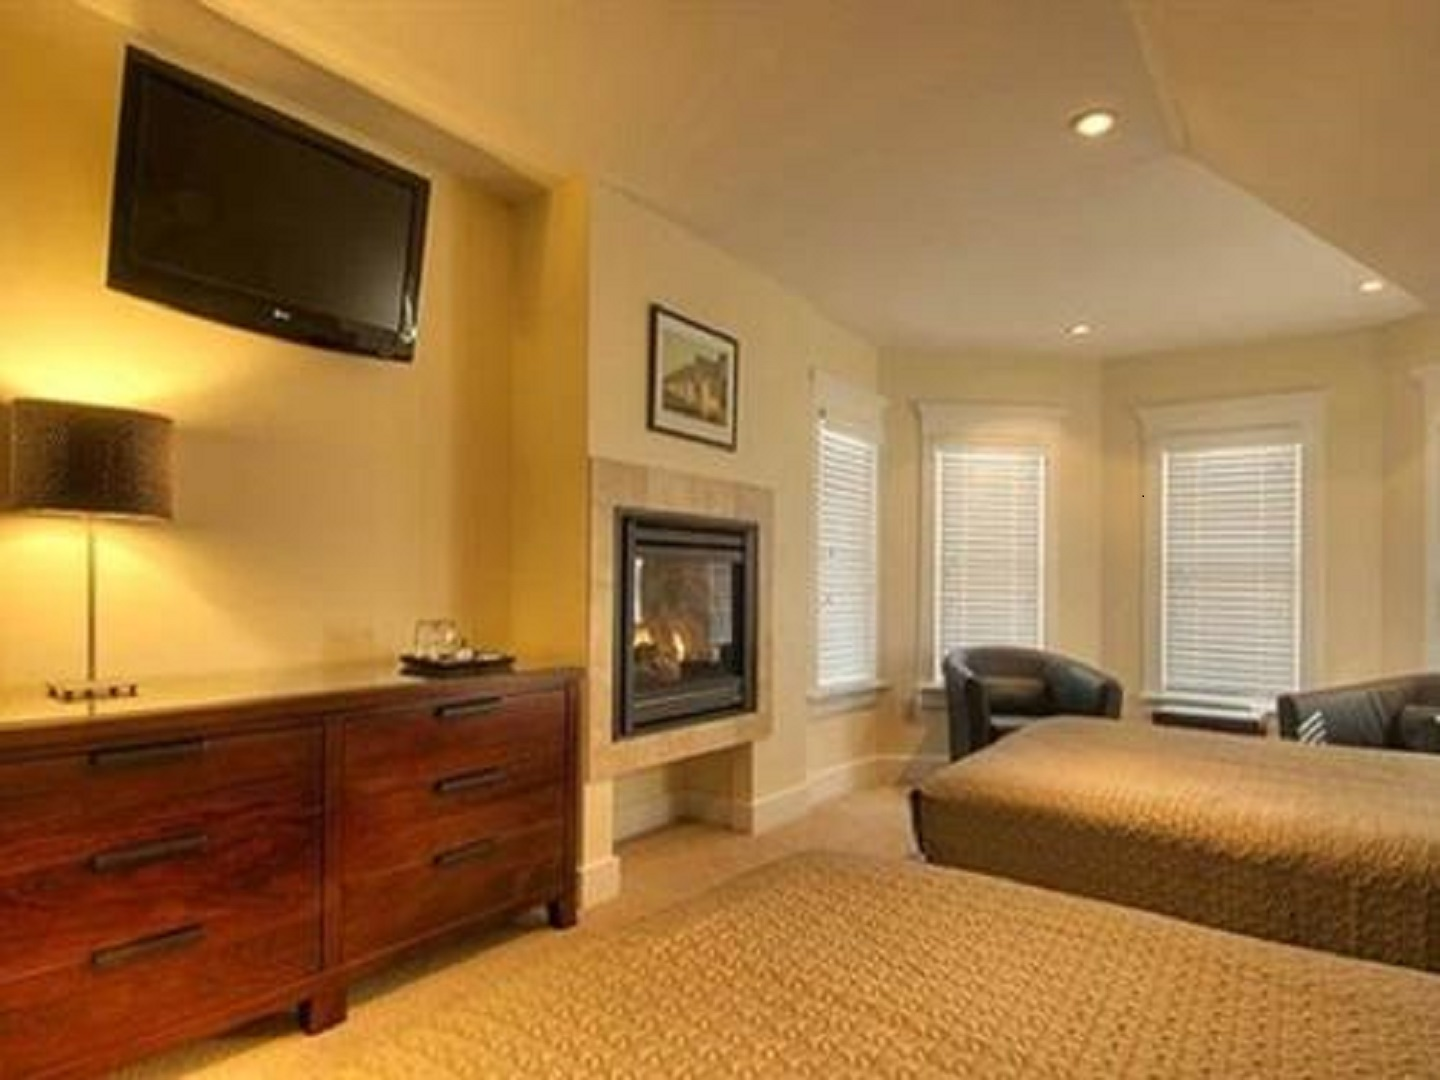 A living room filled with furniture and a flat screen tv at Lotus Guest House.